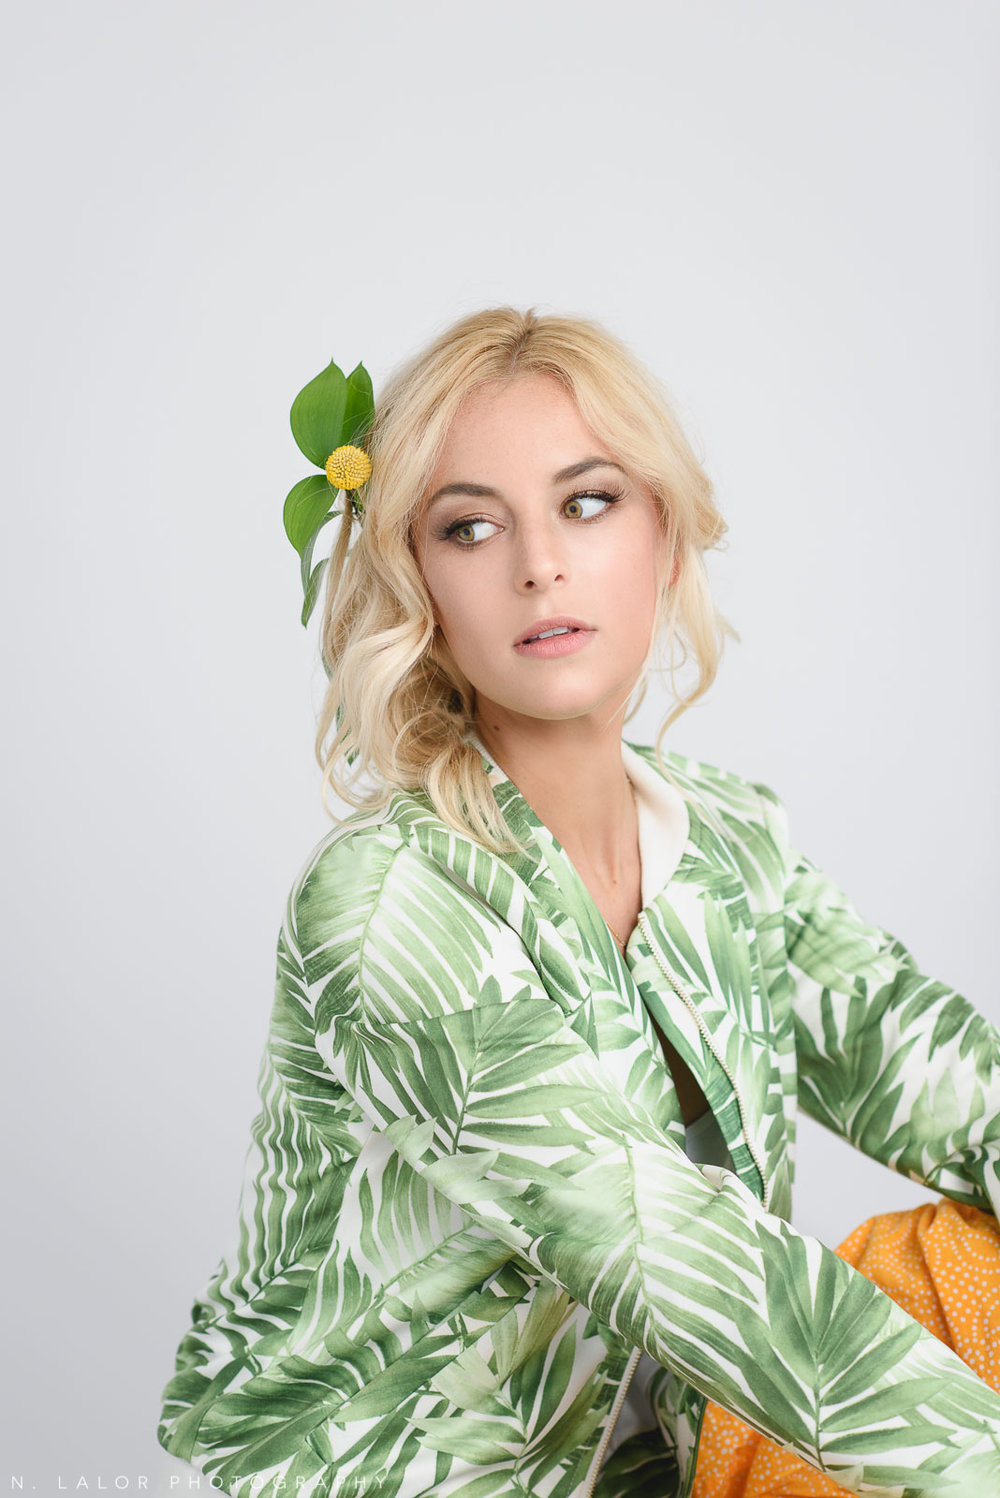 Green and yellow, leaf jacket and boho hairstyle. Commercial portrait session for Haus of Pretty with N. Lalor Photography in Greenwich, Connecticut.